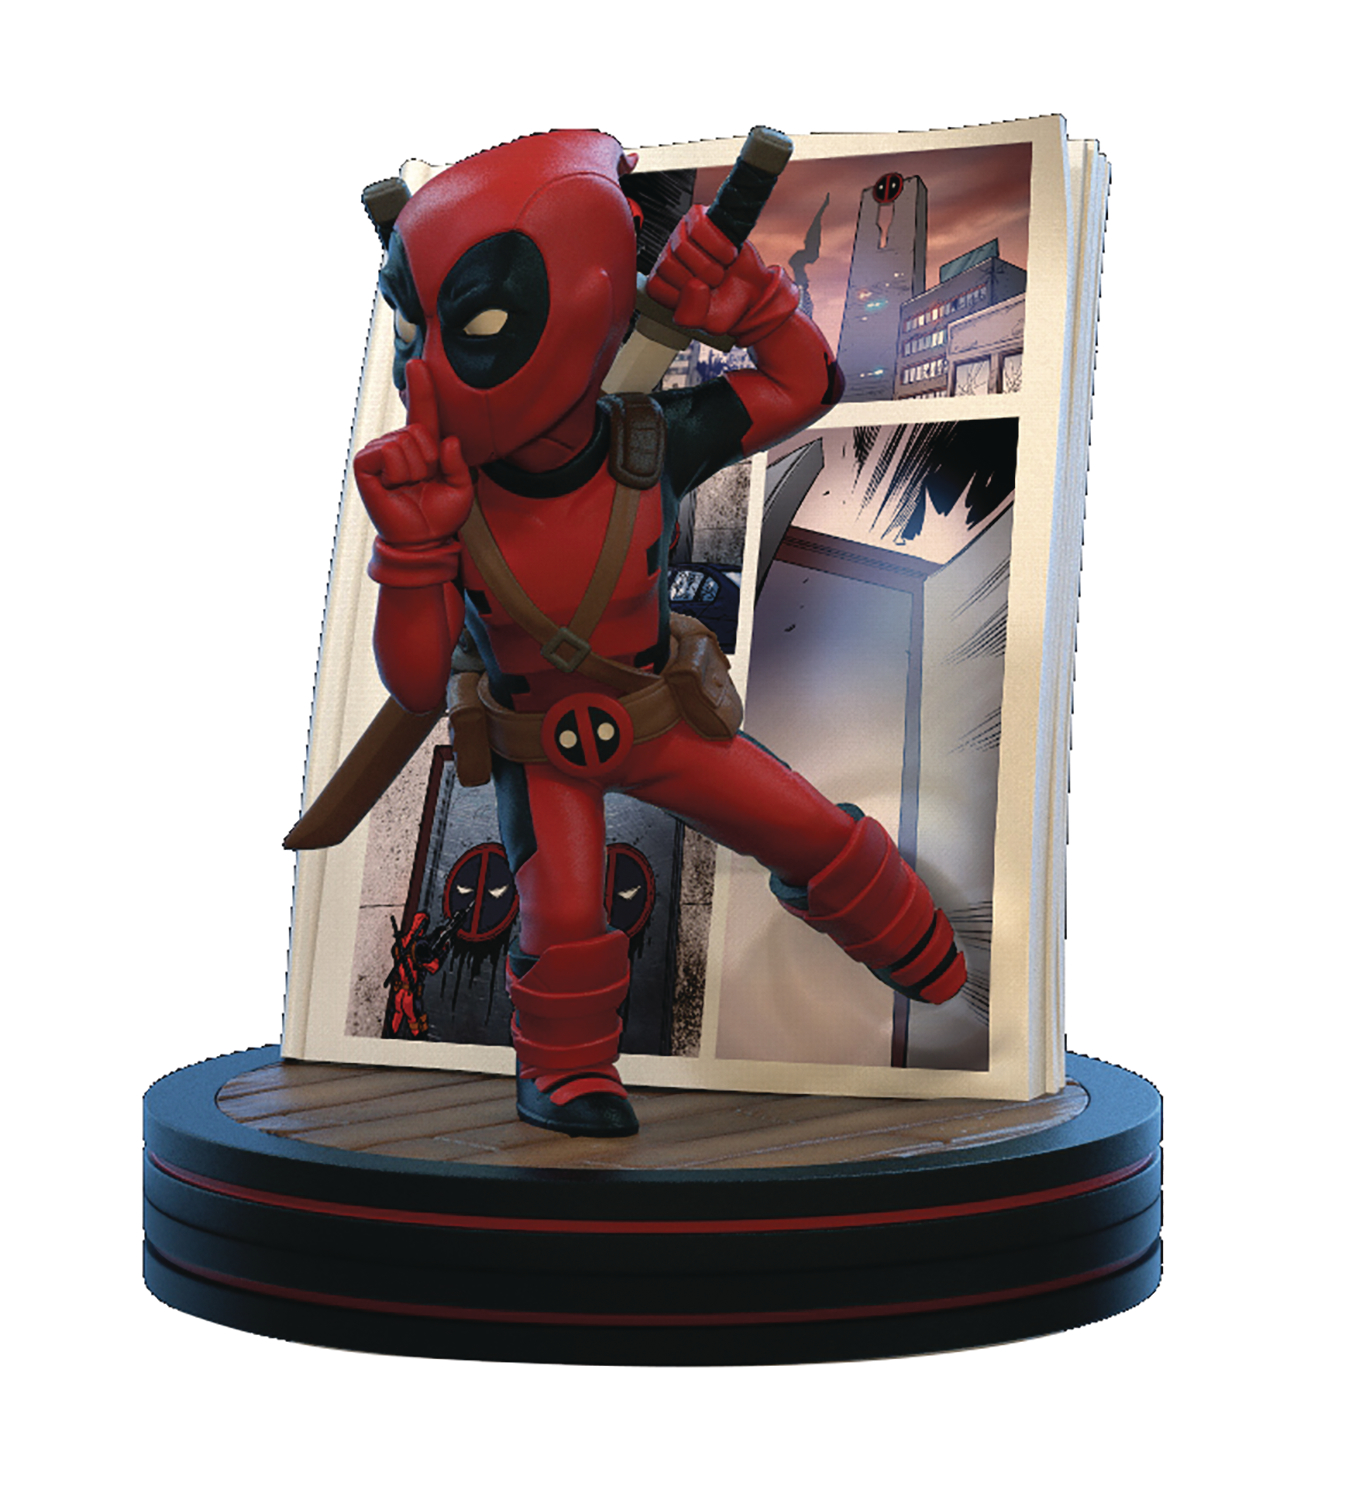 MARVEL DEADPOOL 4D Q-FIG DIORAMA FIGURE